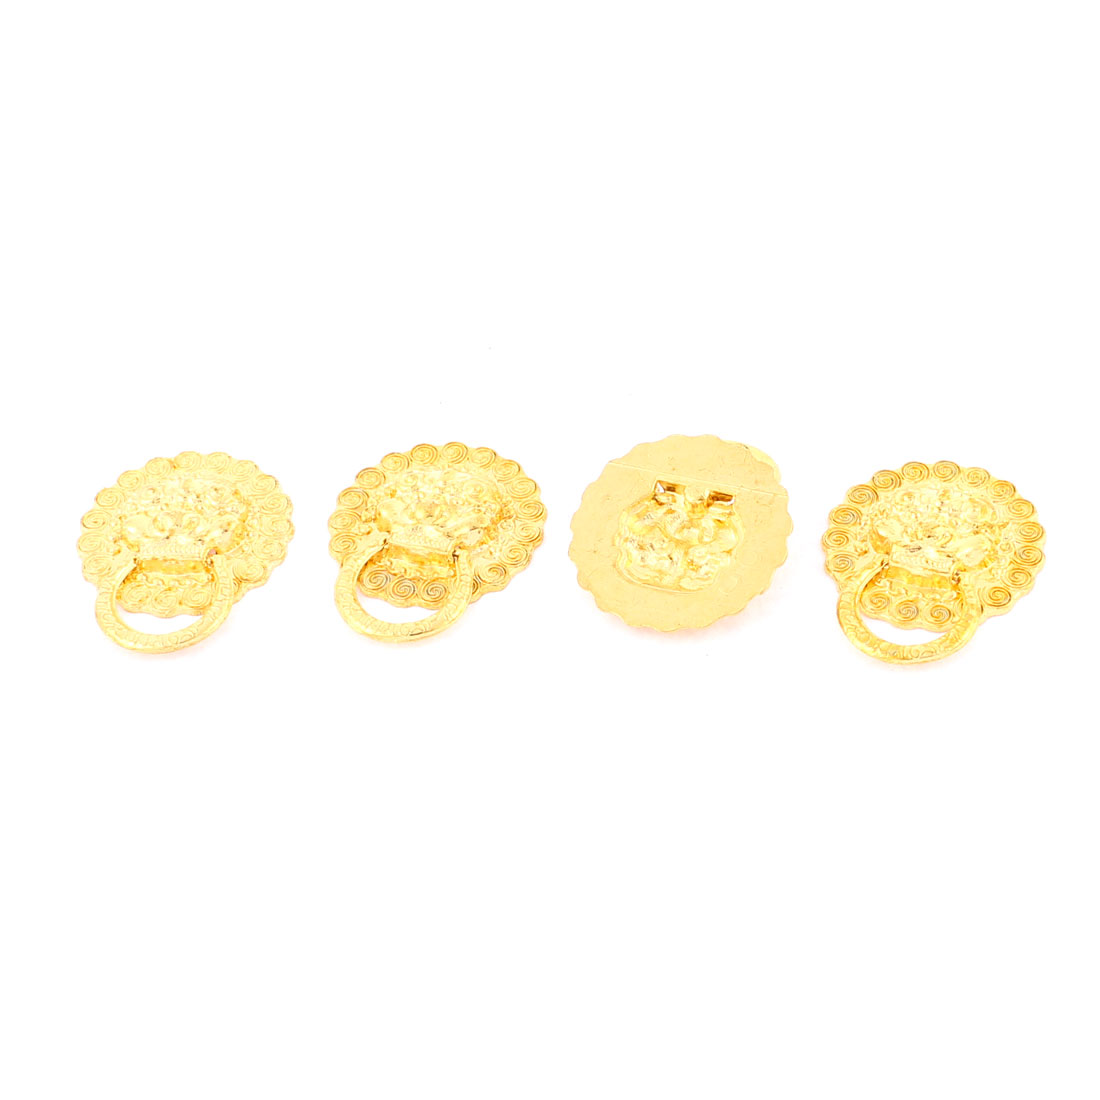 Home Jewelry Box Cabinet Door Round Shaped Pull Handle Ring Gold Tone 4pcs